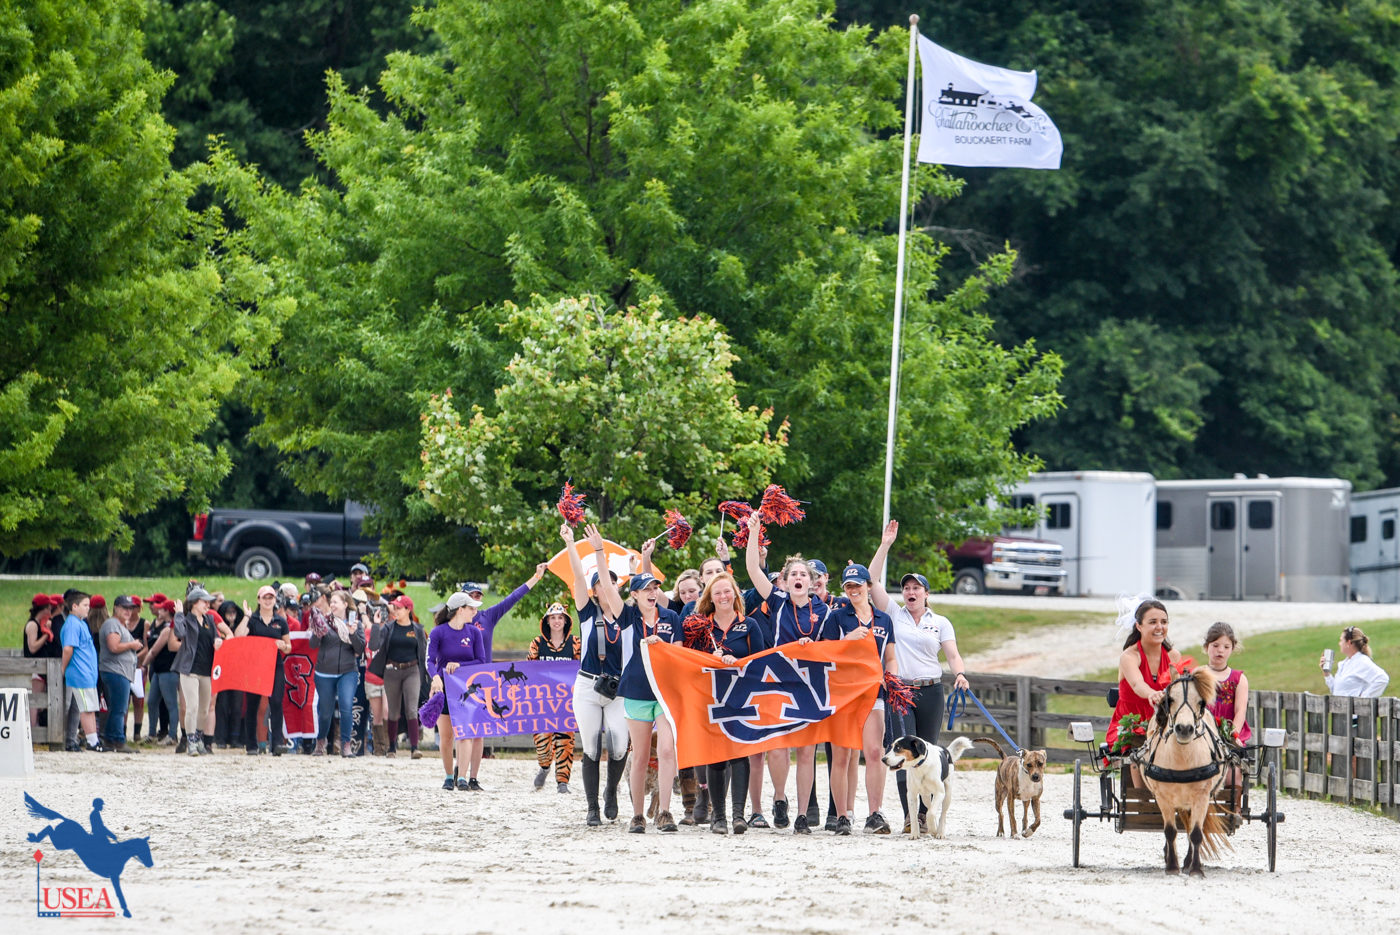 The Chattahoochee Hills flag flies proudly over the opening ceremony parade of competitors.